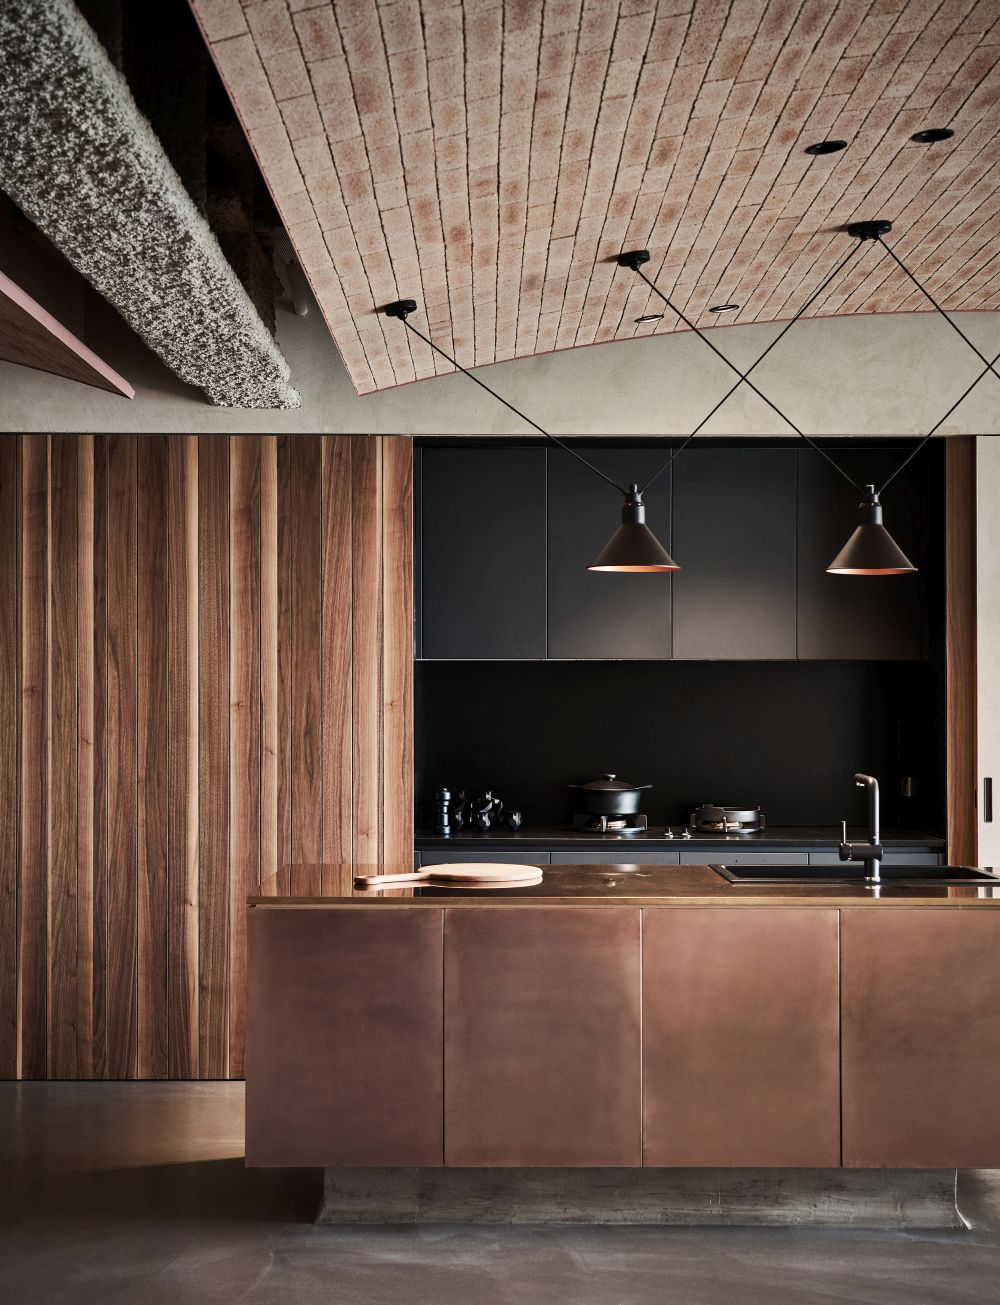 The materials and finishes used for the interior have a masculine and industrial vibe